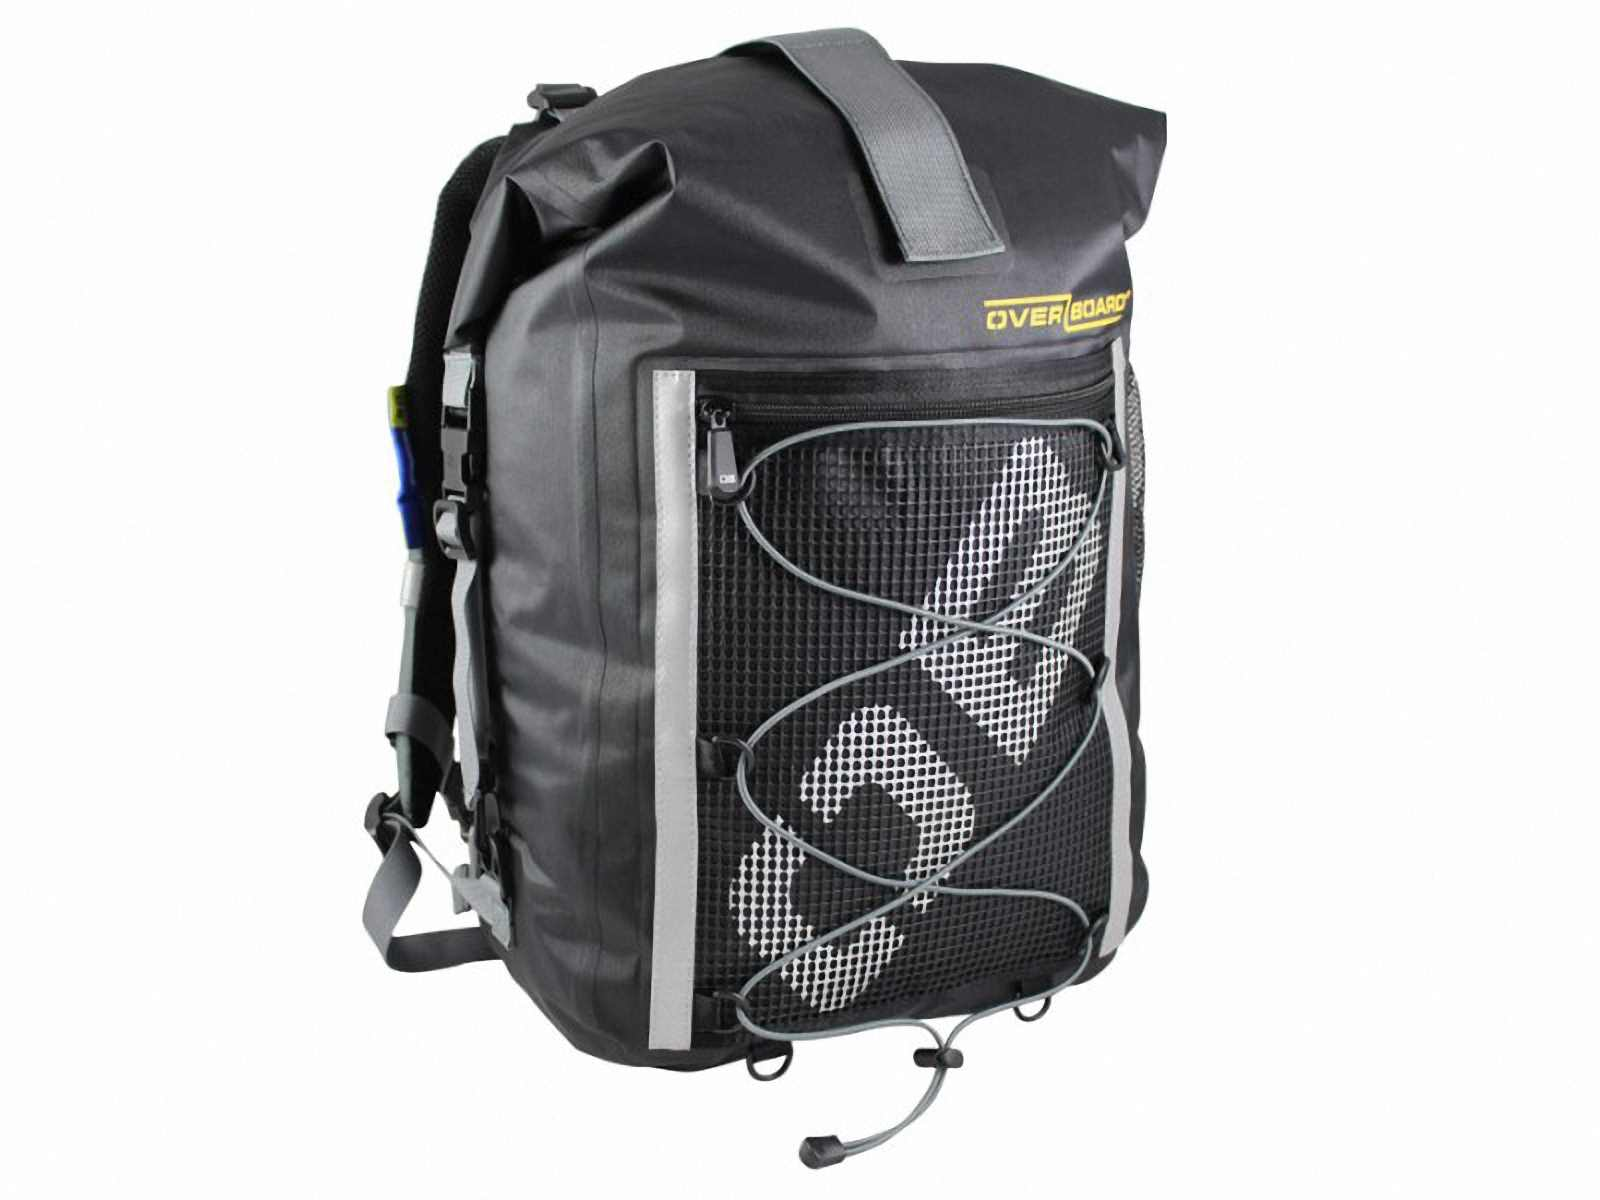 Водонепроницаемый рюкзак OverBoard OB1136BLK - Ultra-light Pro-Sports Waterproof Backpack - 30L. Фото 6